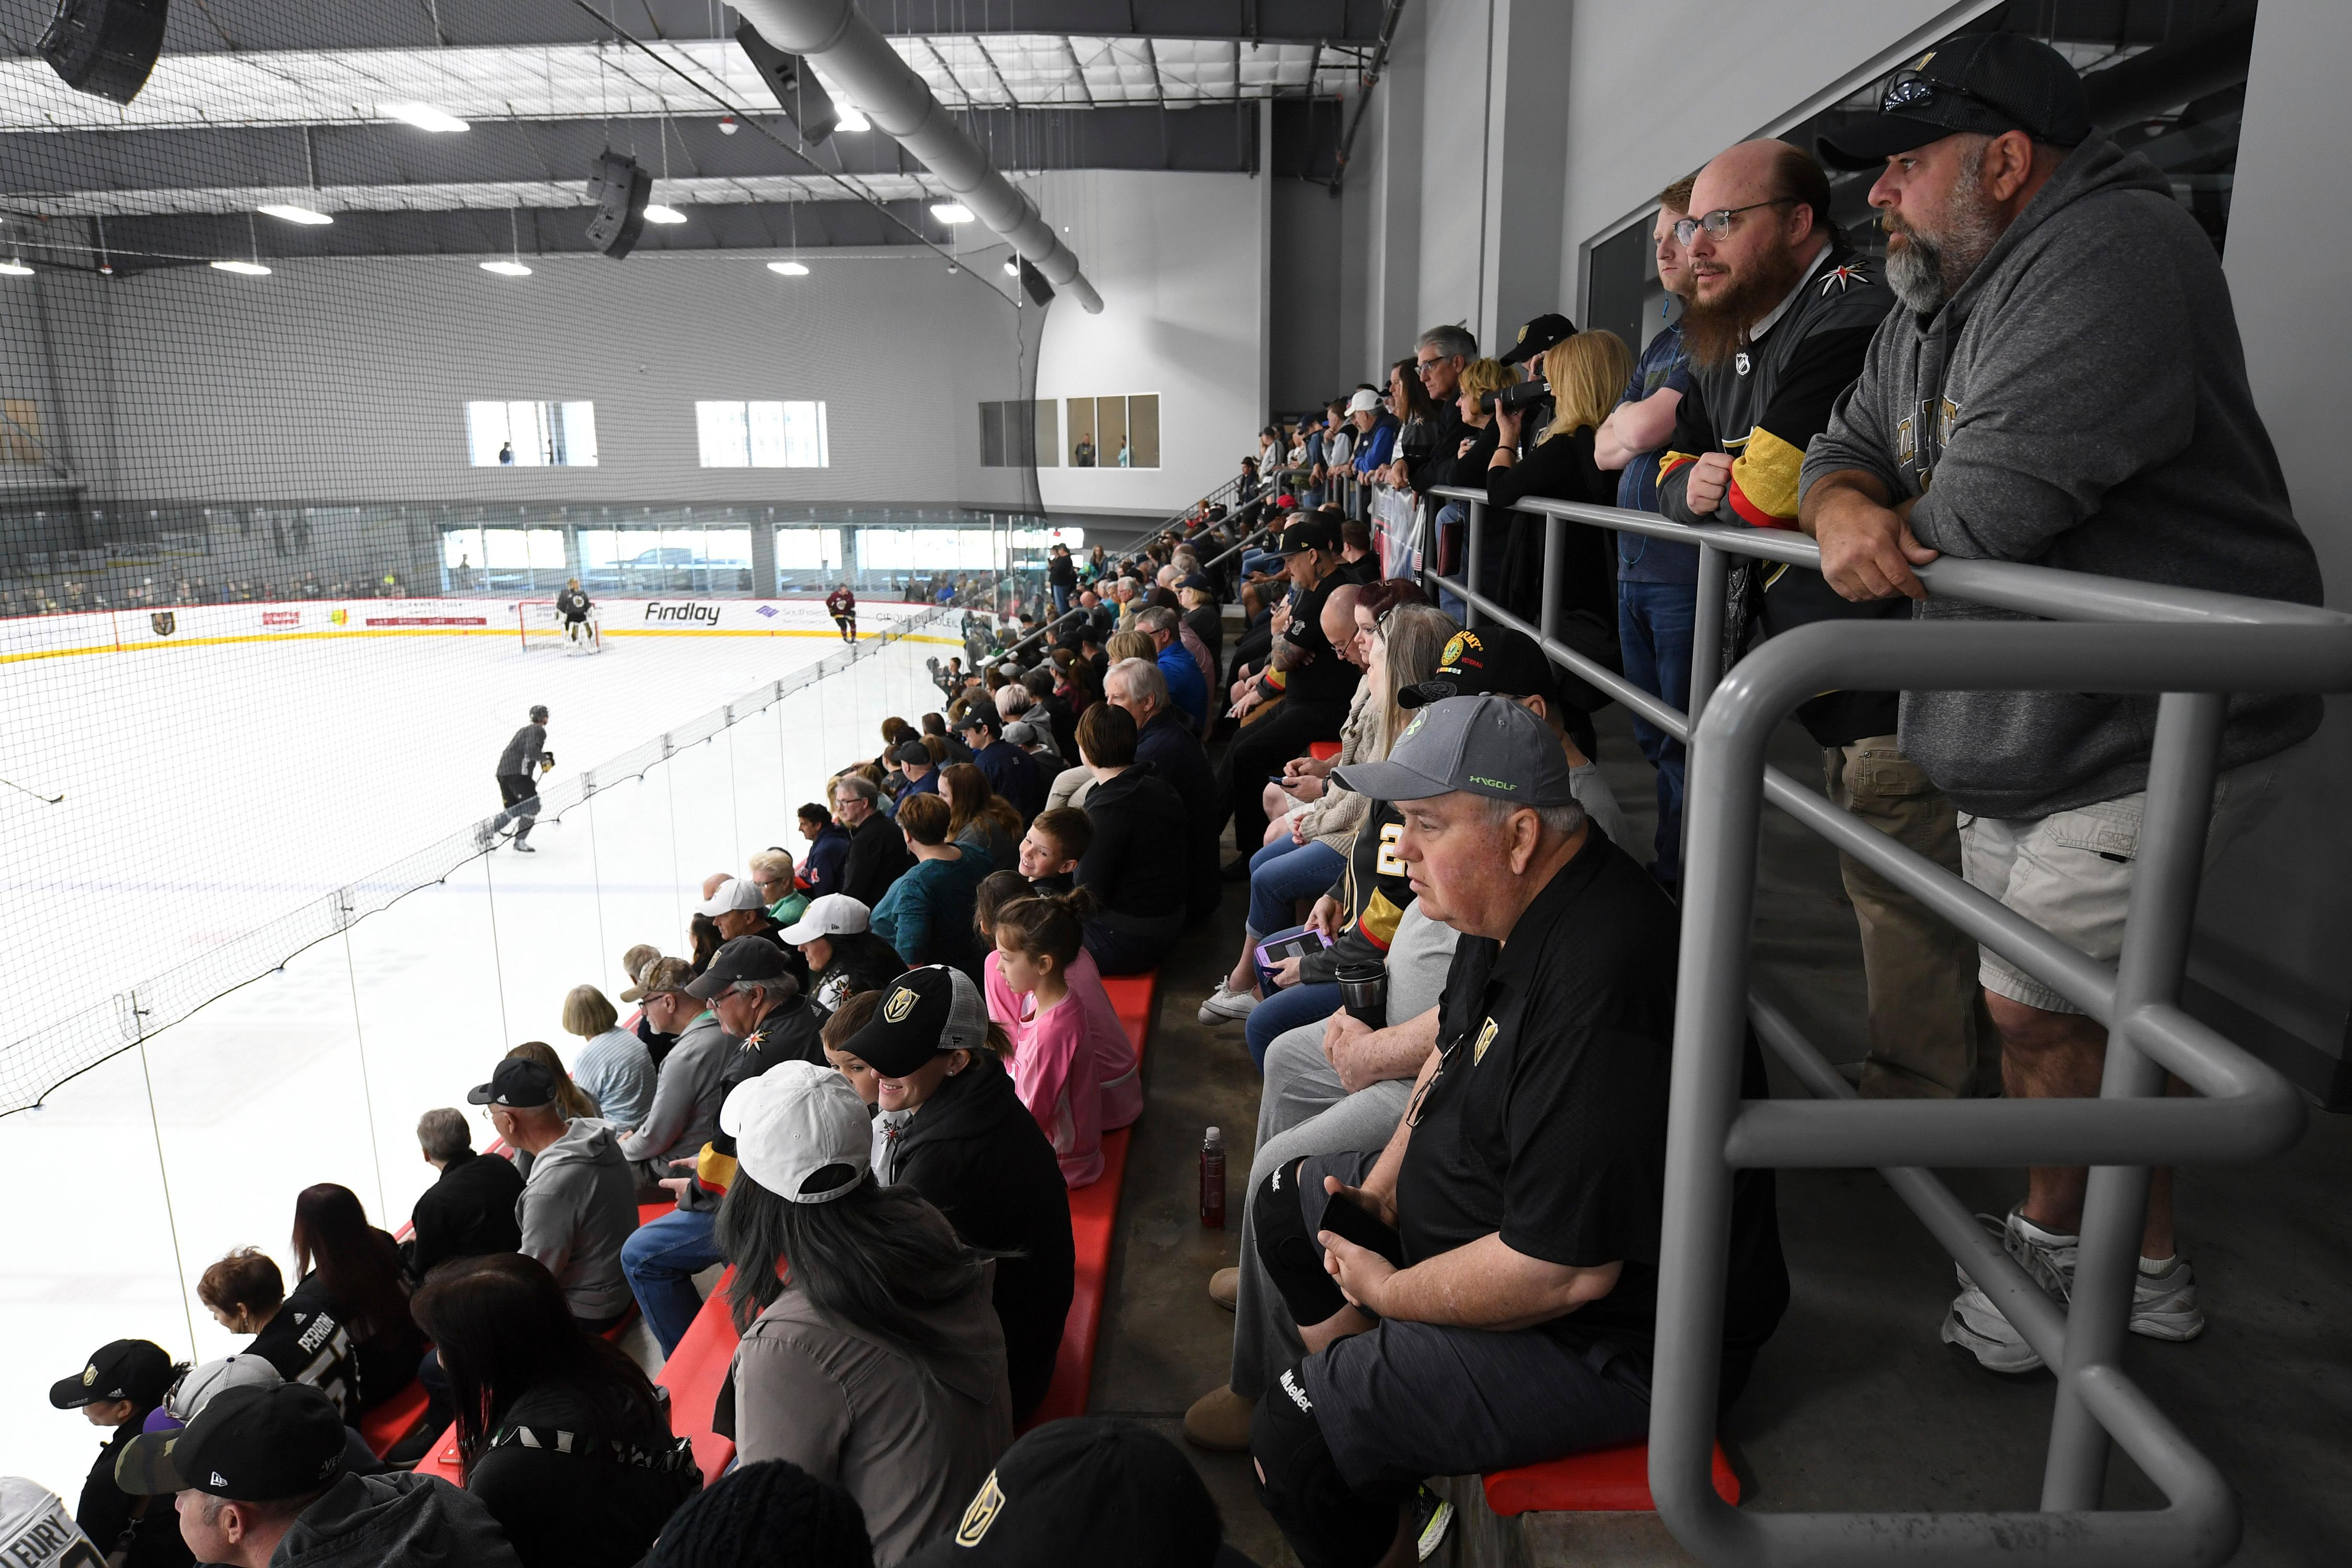 Fans pack the seating area during the Vegas Golden Knights practice Friday, April 20, 2018, at City National Arena in Las Vegas. CREDIT: Sam Morris/Las Vegas News Bureau